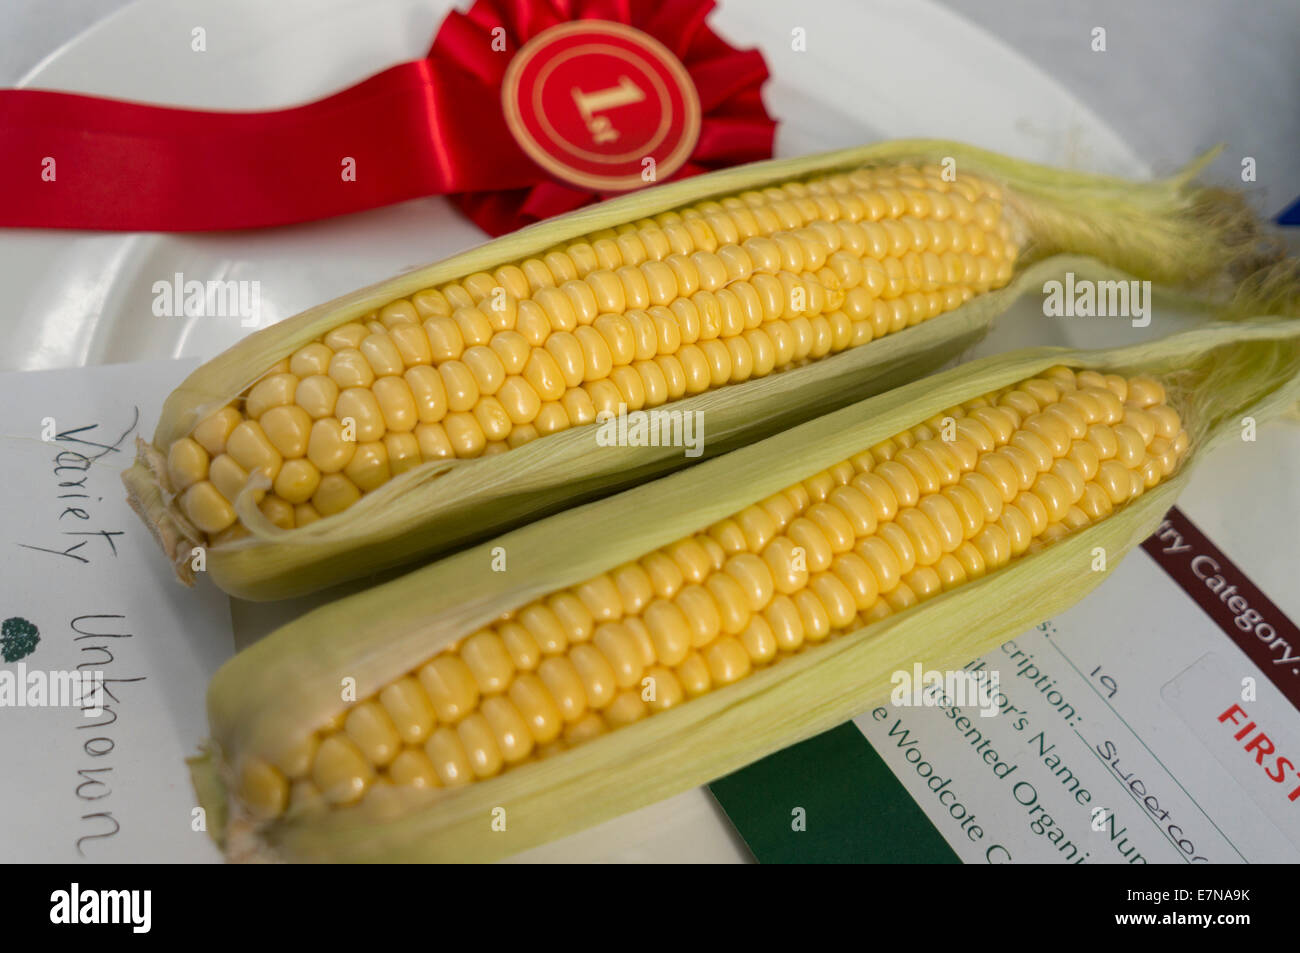 1st place sweetcorn - Stock Image